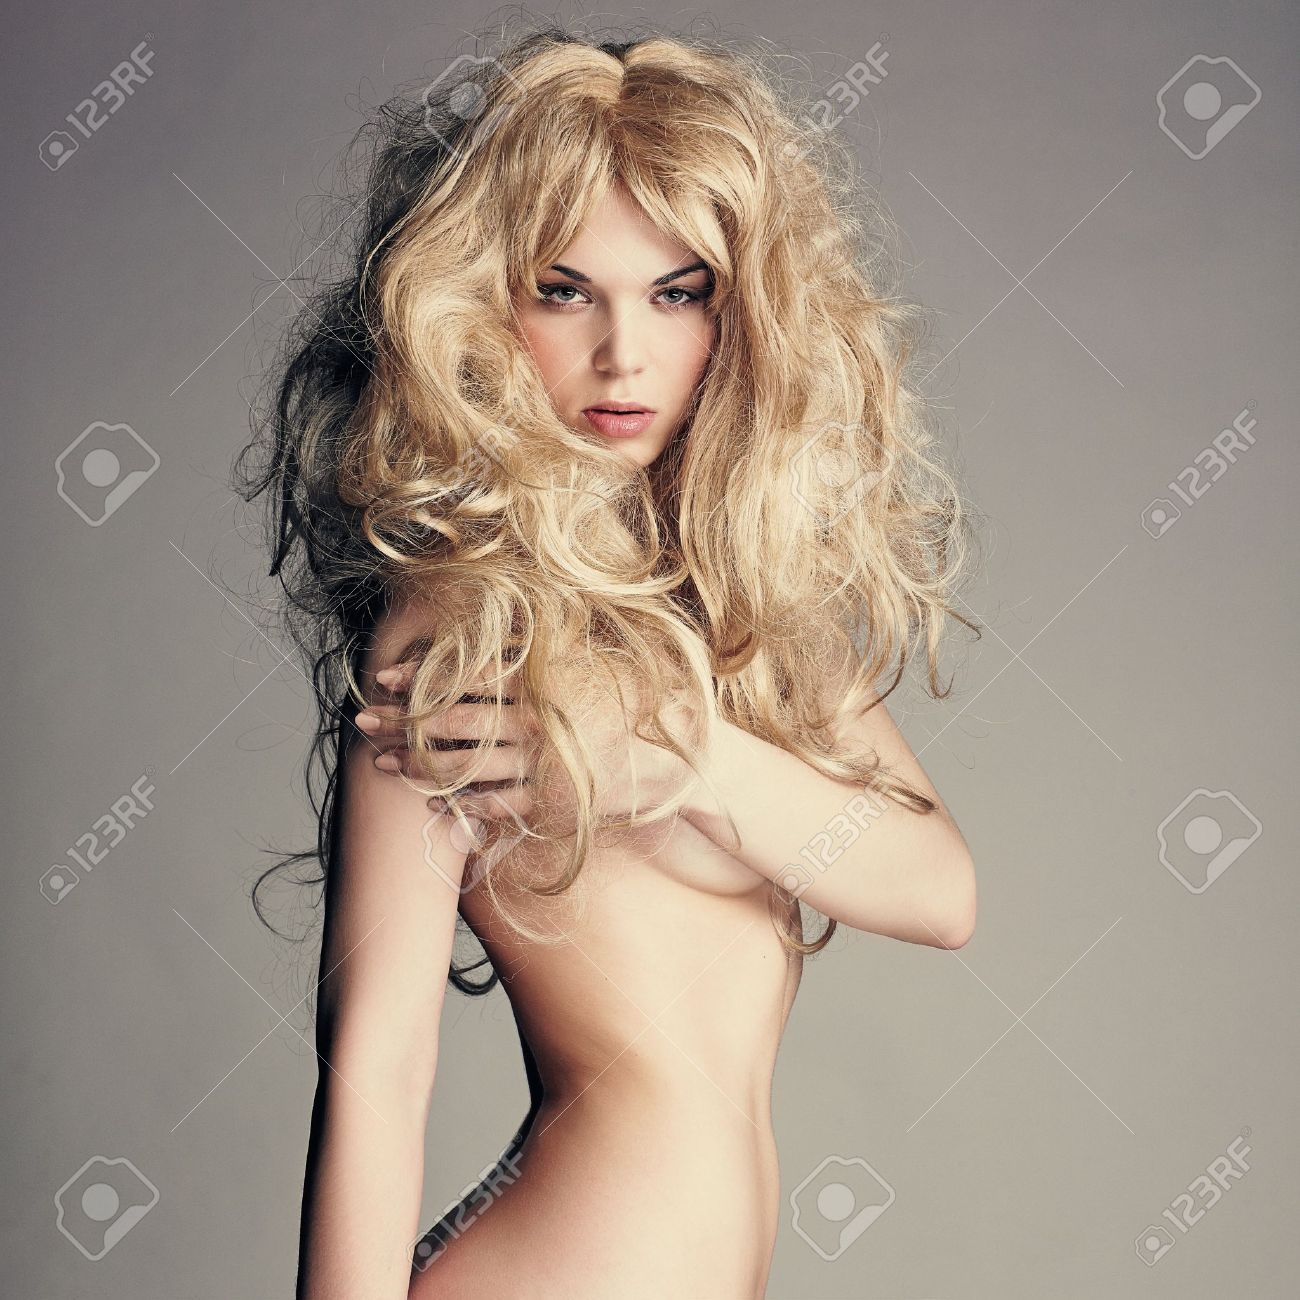 Nude women blond body hair pictures